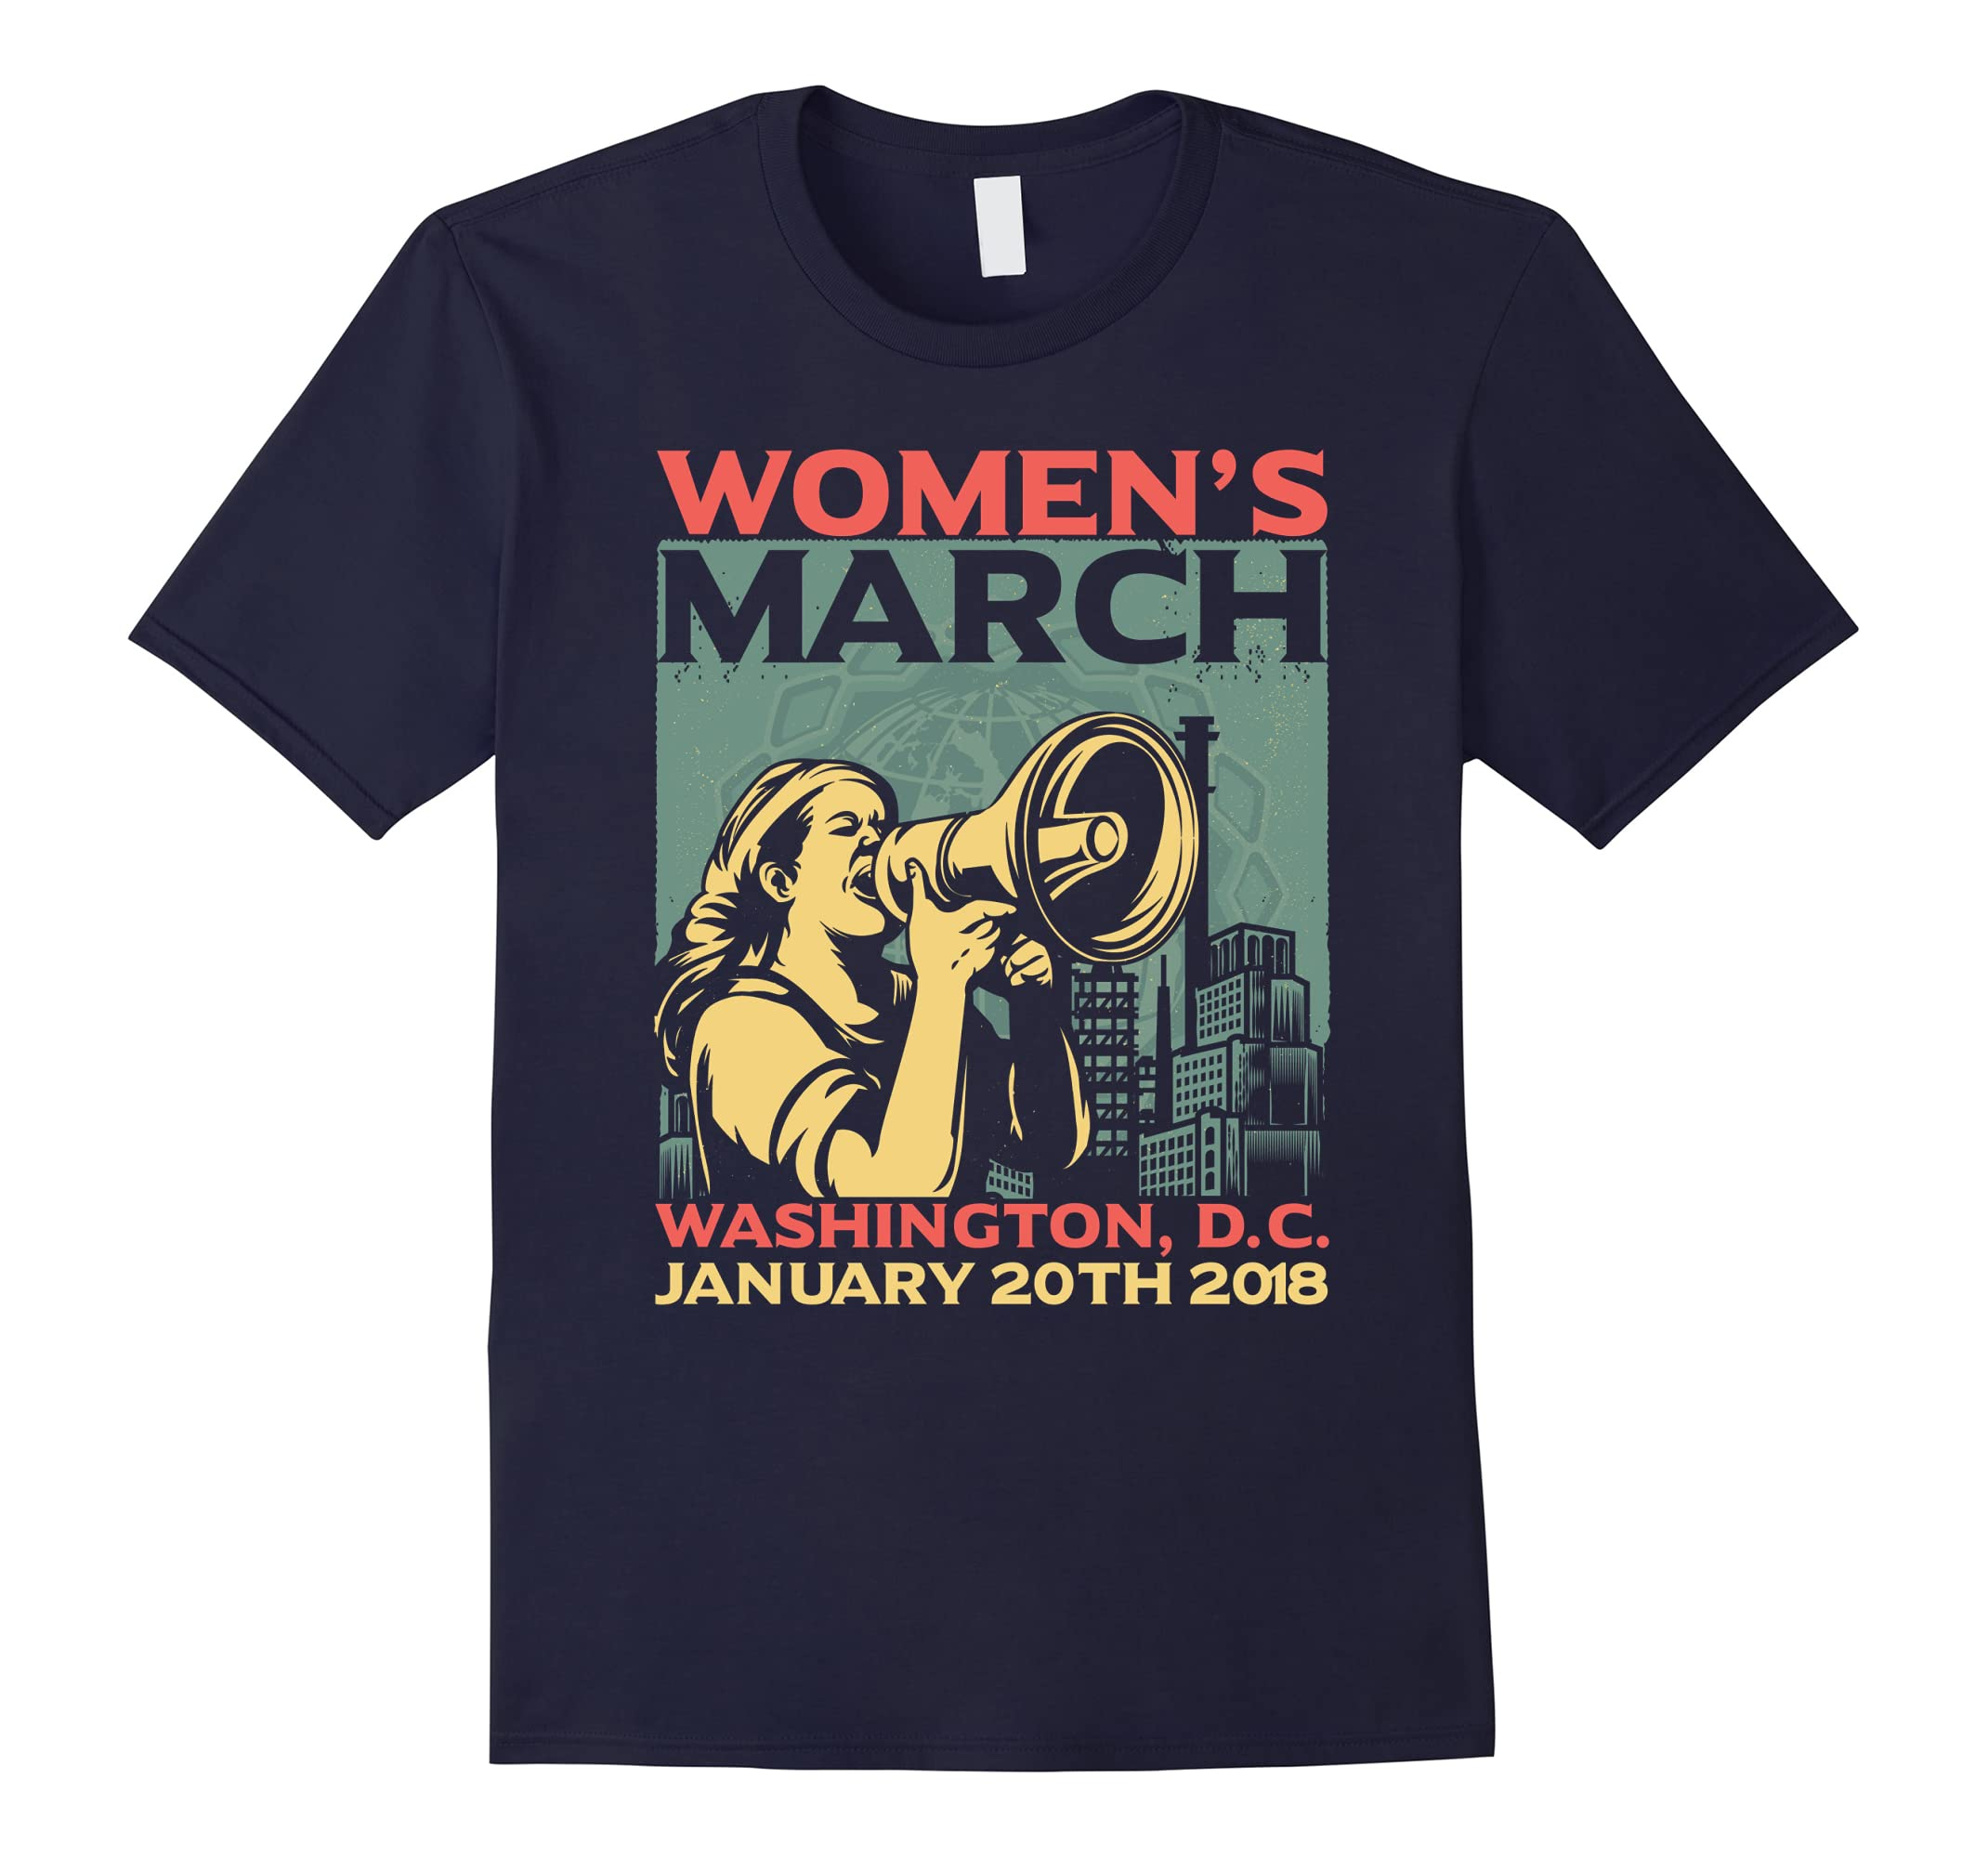 Vintage, Retro Women's March Washington 2018 T-shirt-ah my shirt one gift